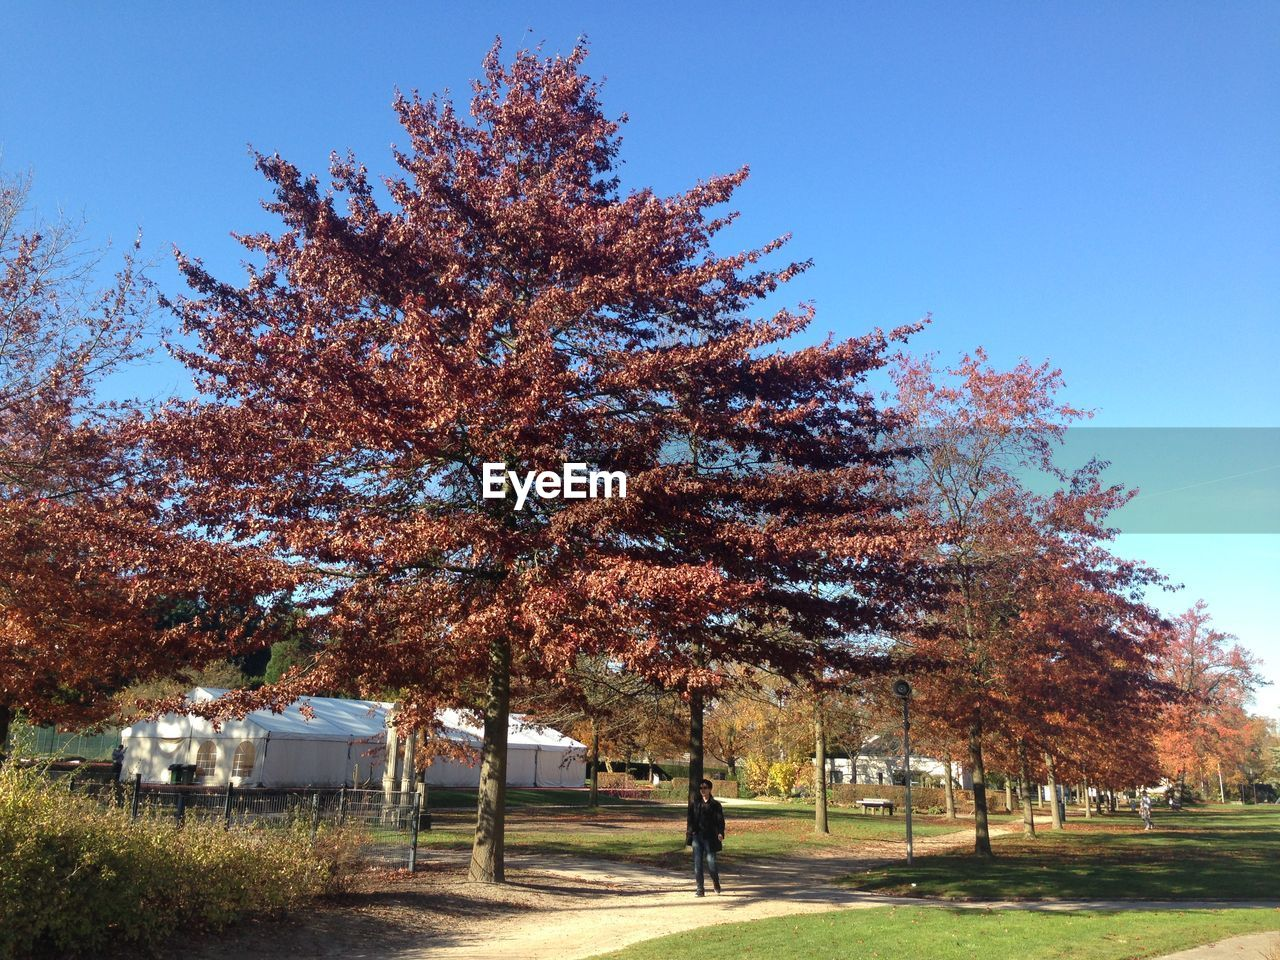 Trees growing at park during autumn